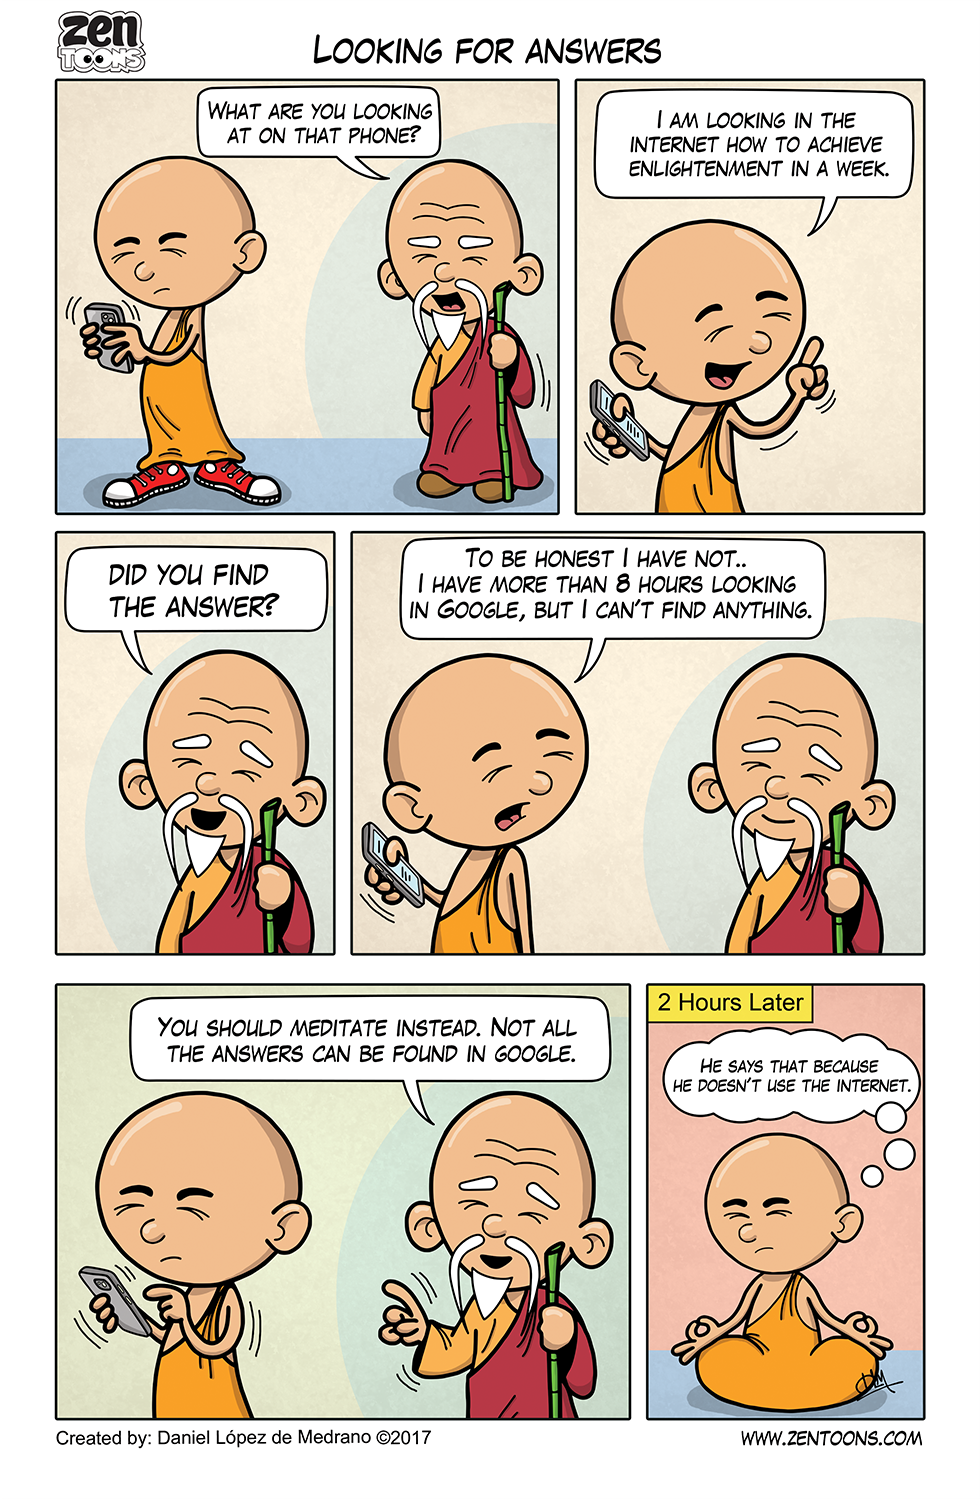 006. ZEN TOONS: Looking for Answers.